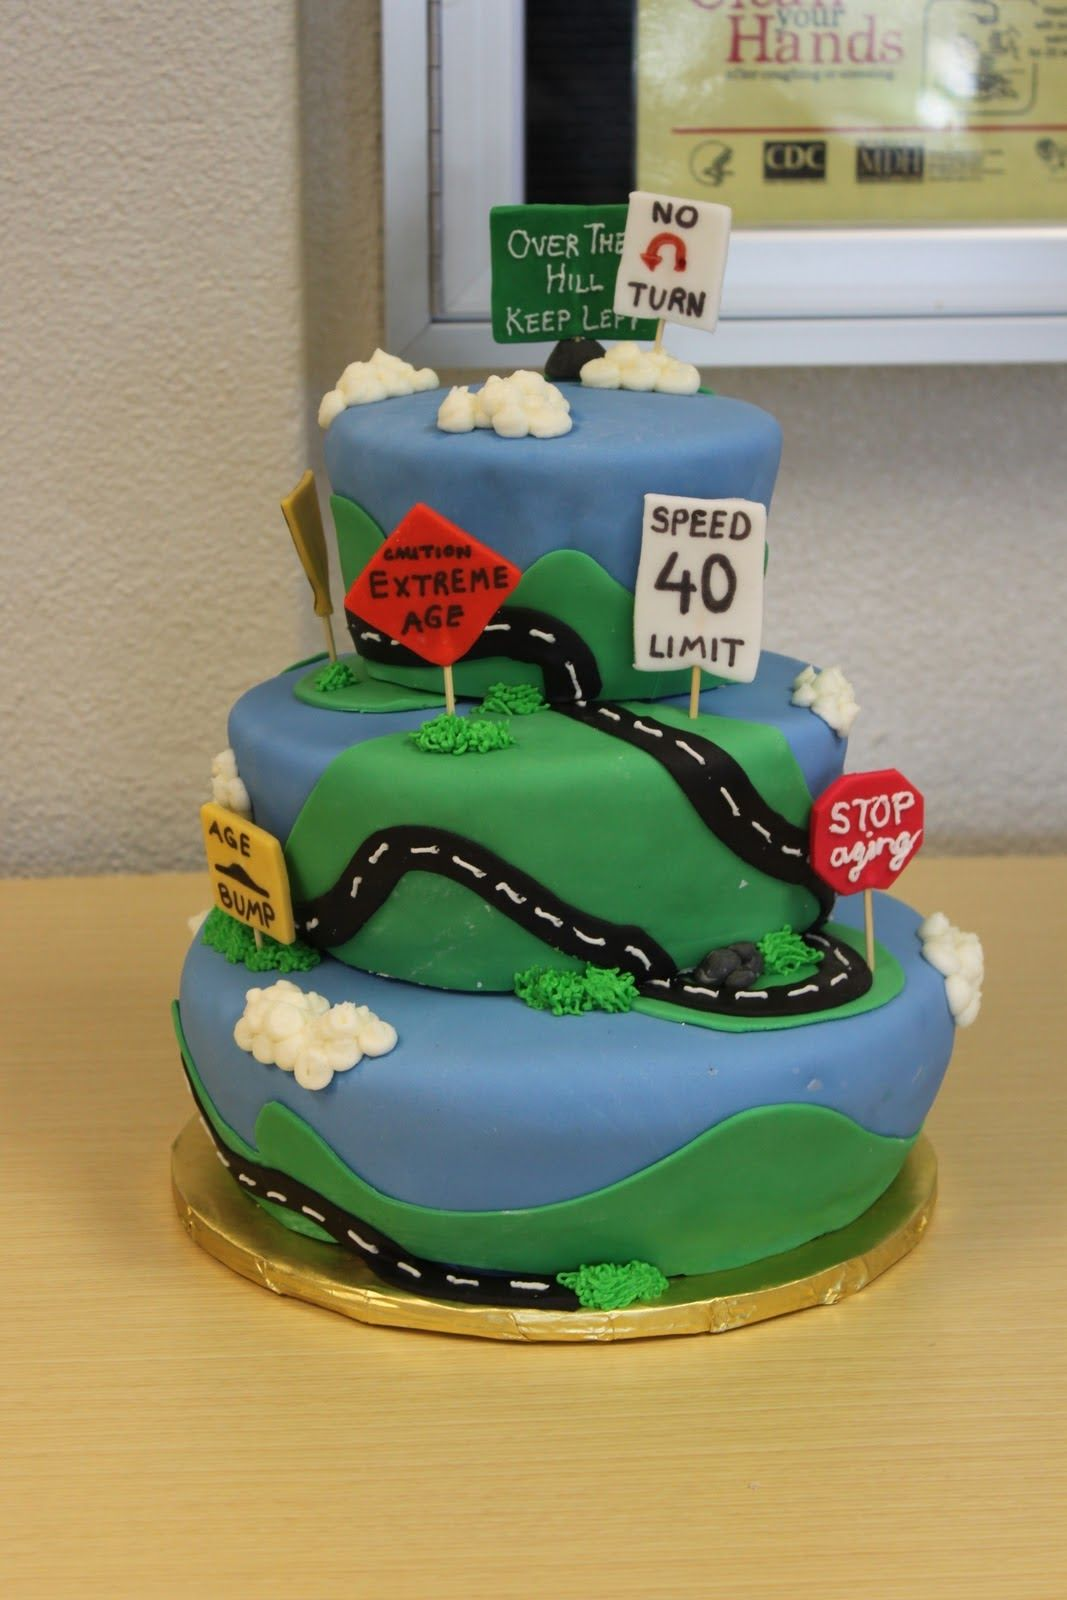 Road Bike Cake Decoration : Road of Life cake (cup)cake Pinterest Cake